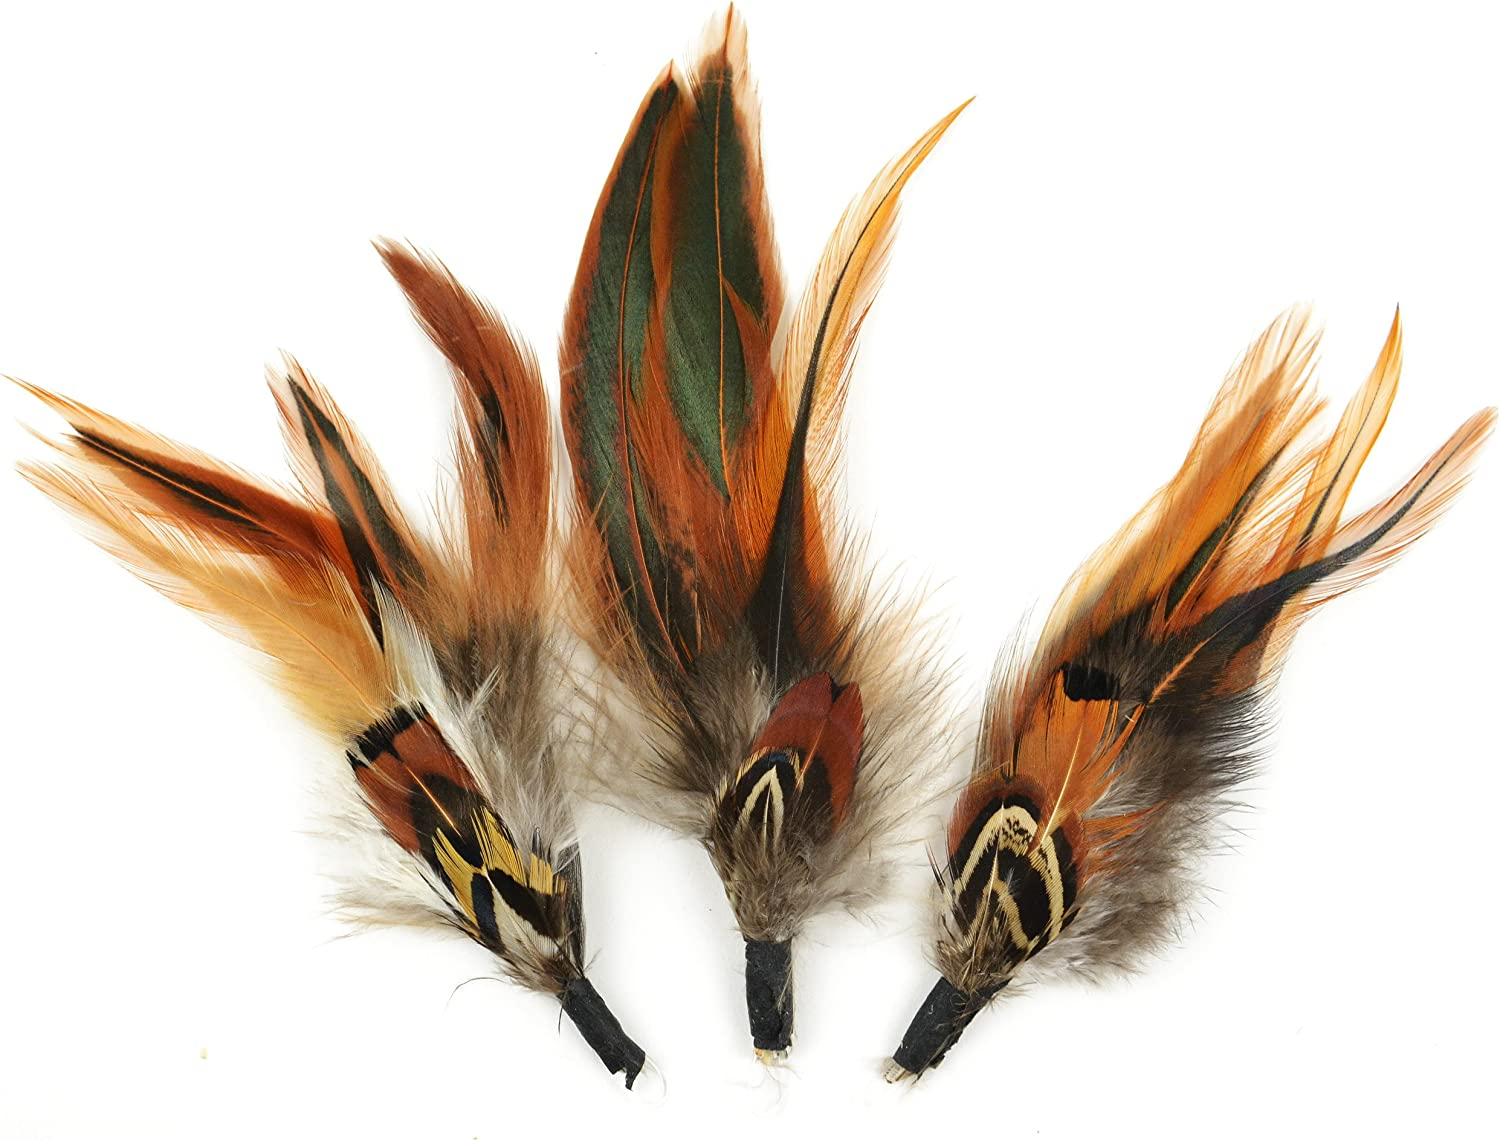 Touch of Nature 3-Piece Natural Feather Pick with Nylon Loop for Arts and Crafts, 4.5-Inch, Ringneck Pheasant